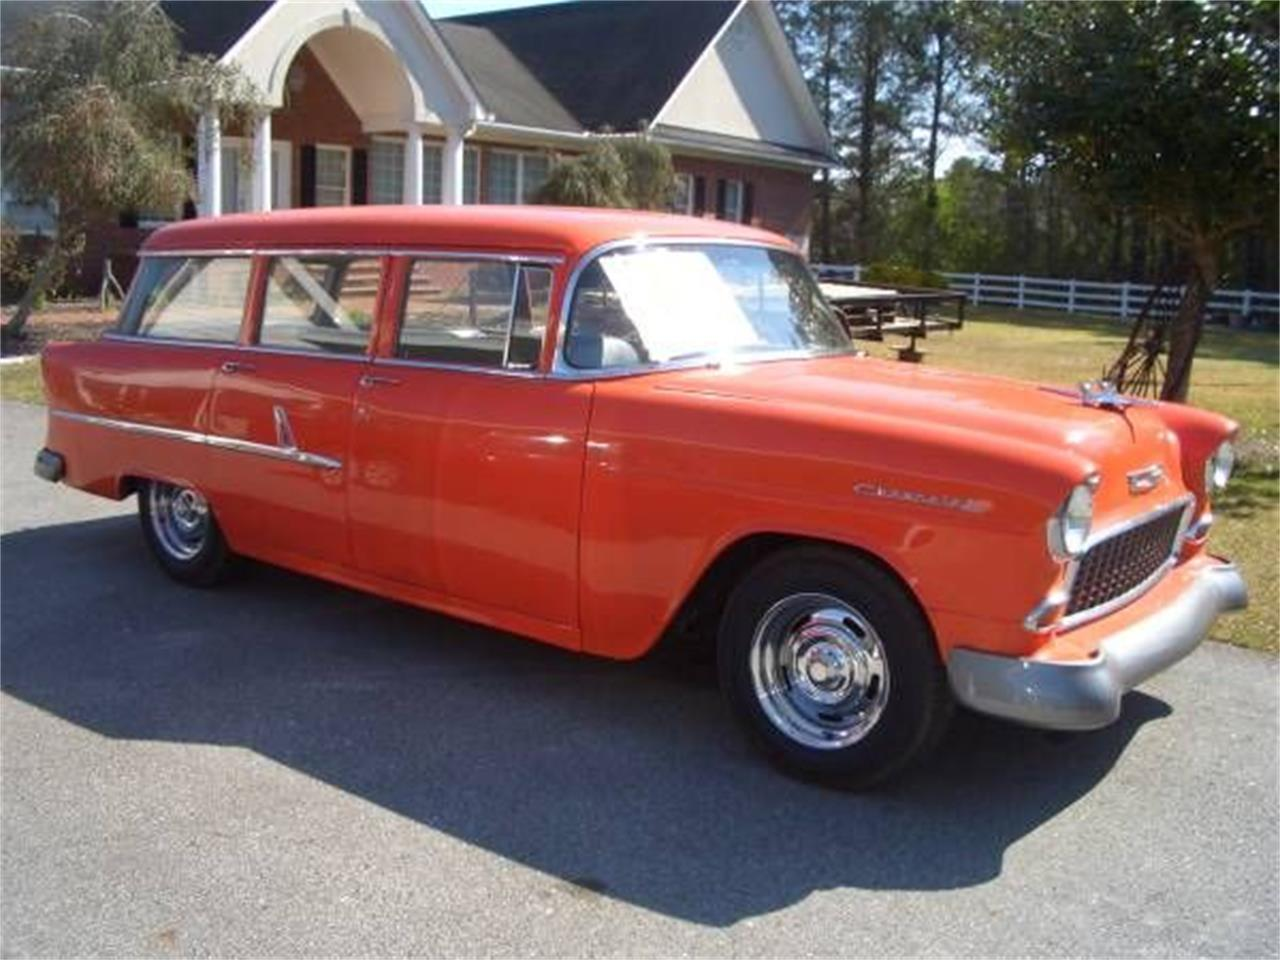 1955 Chevrolet Station Wagon for Sale | ClassicCars.com ...